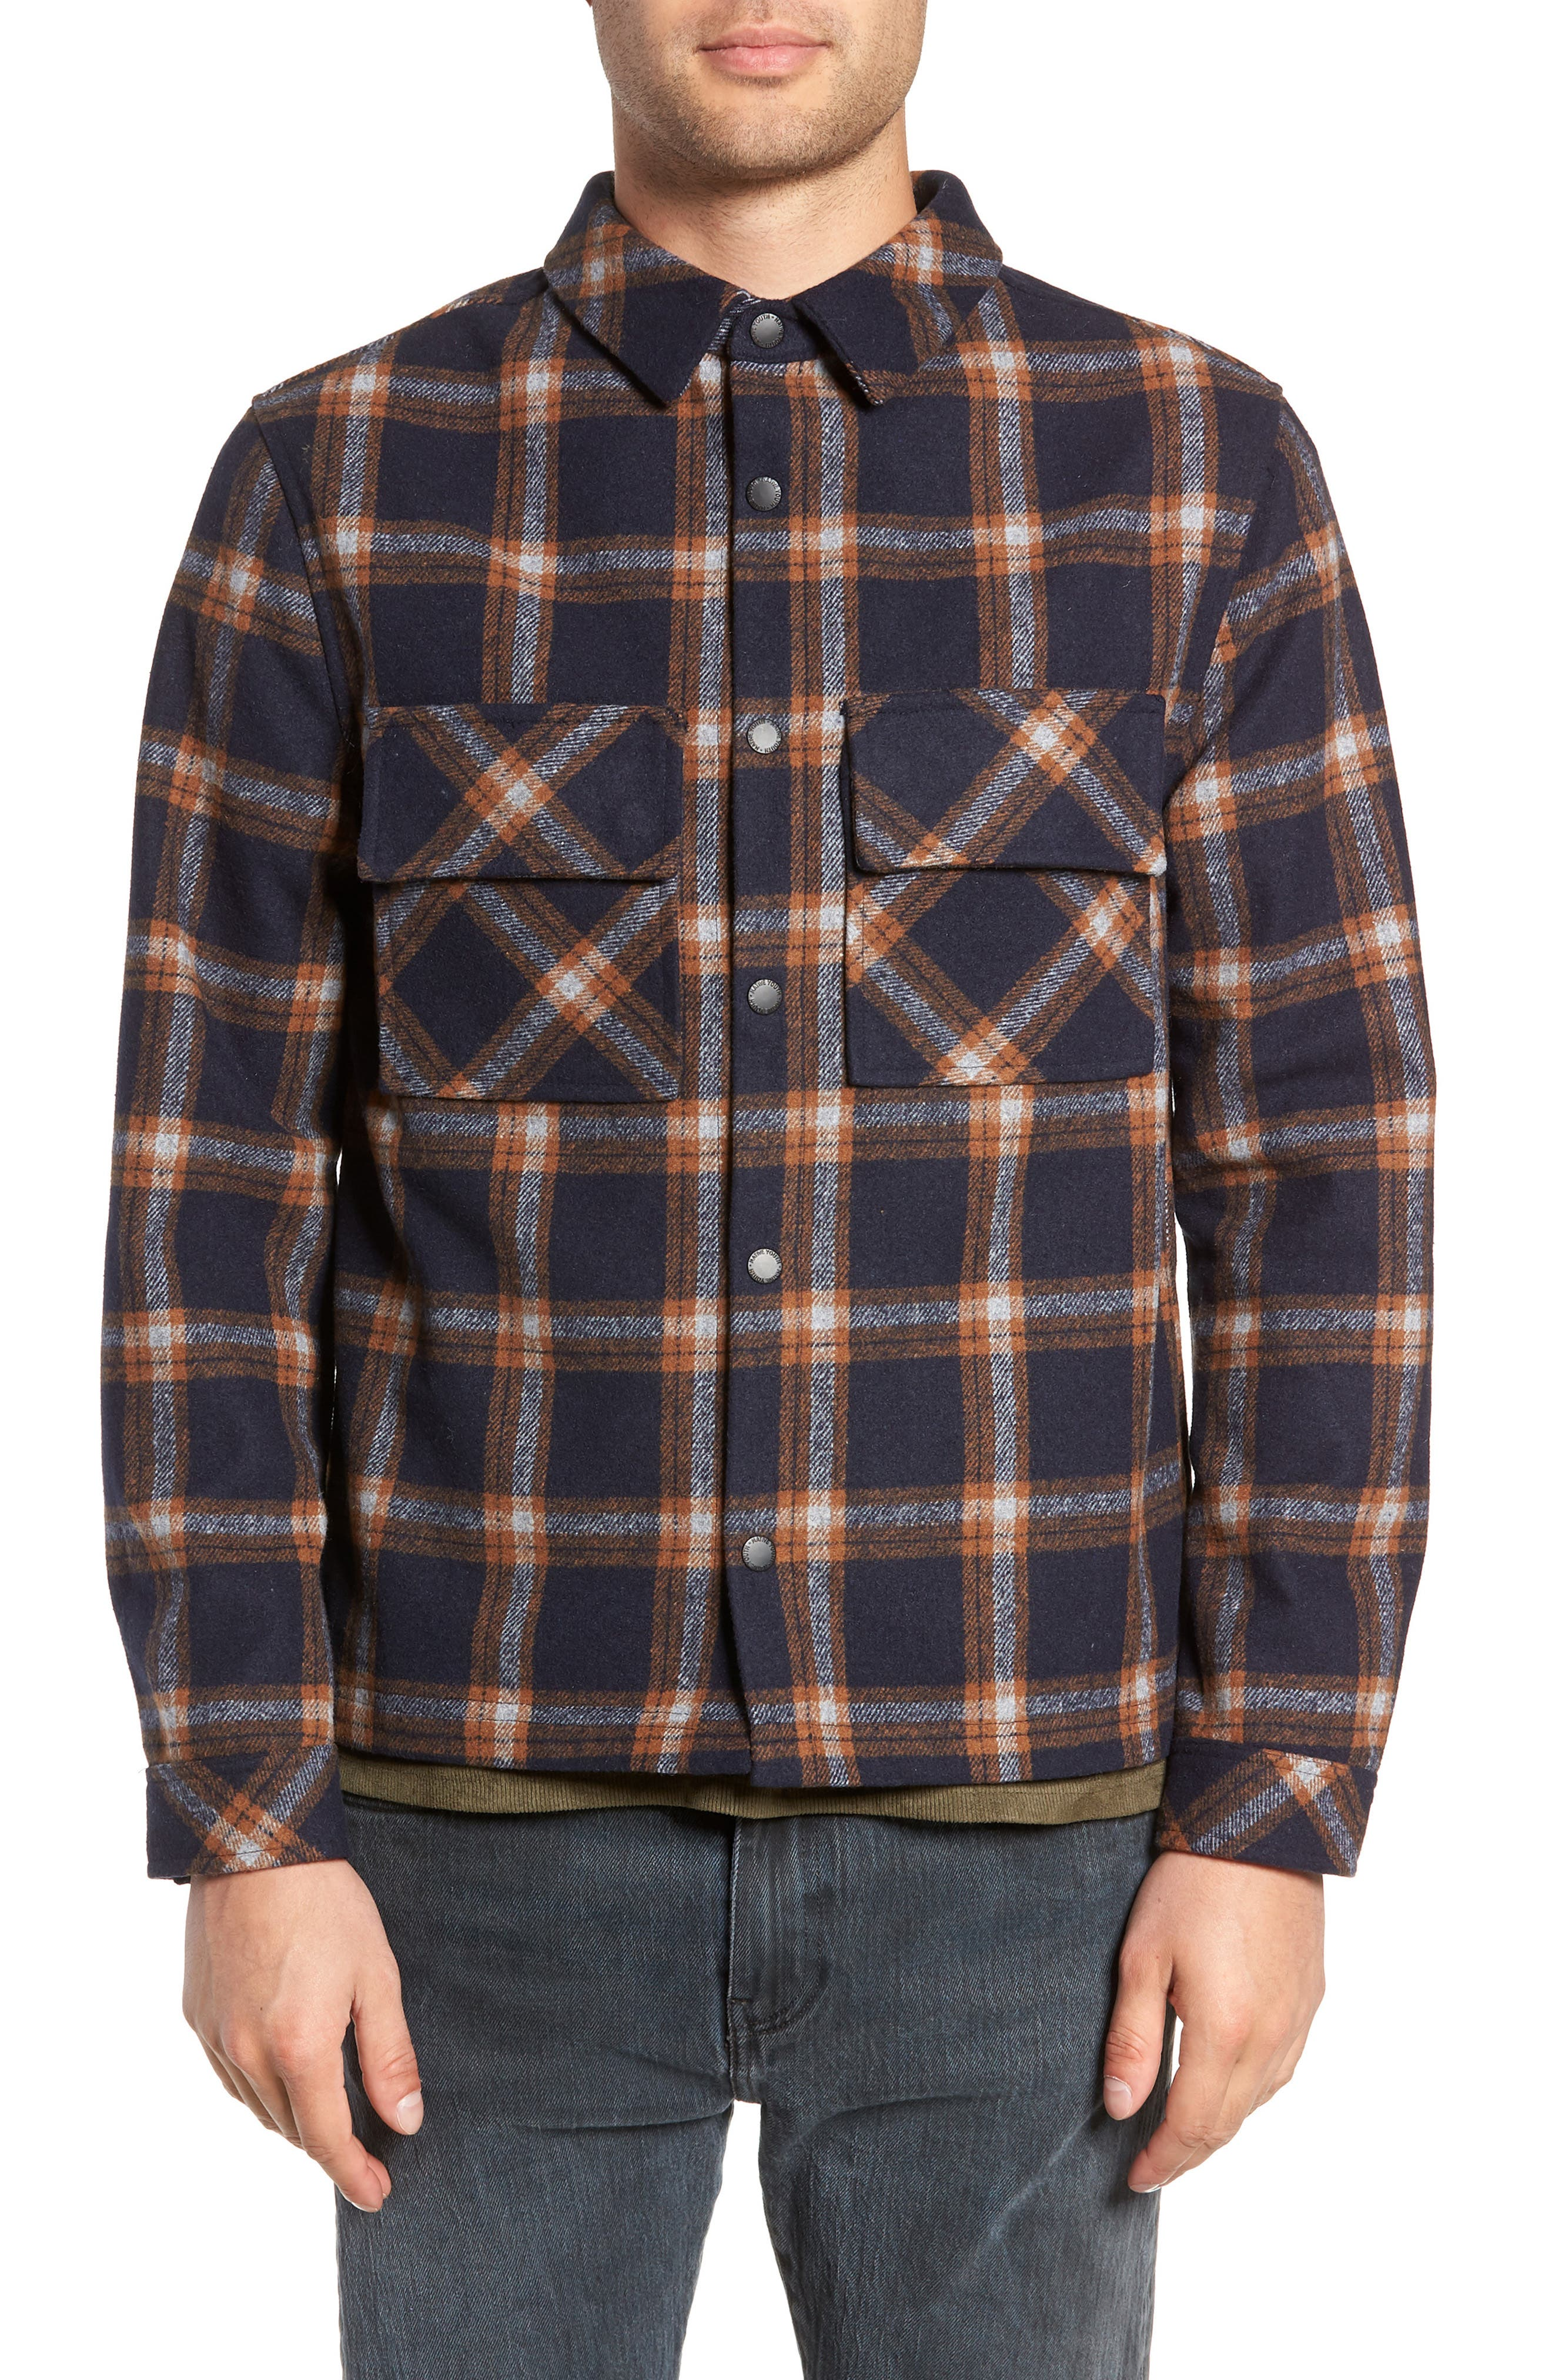 NATIVE YOUTH,                             Check Flannel Shirt,                             Alternate thumbnail 2, color,                             NAVY